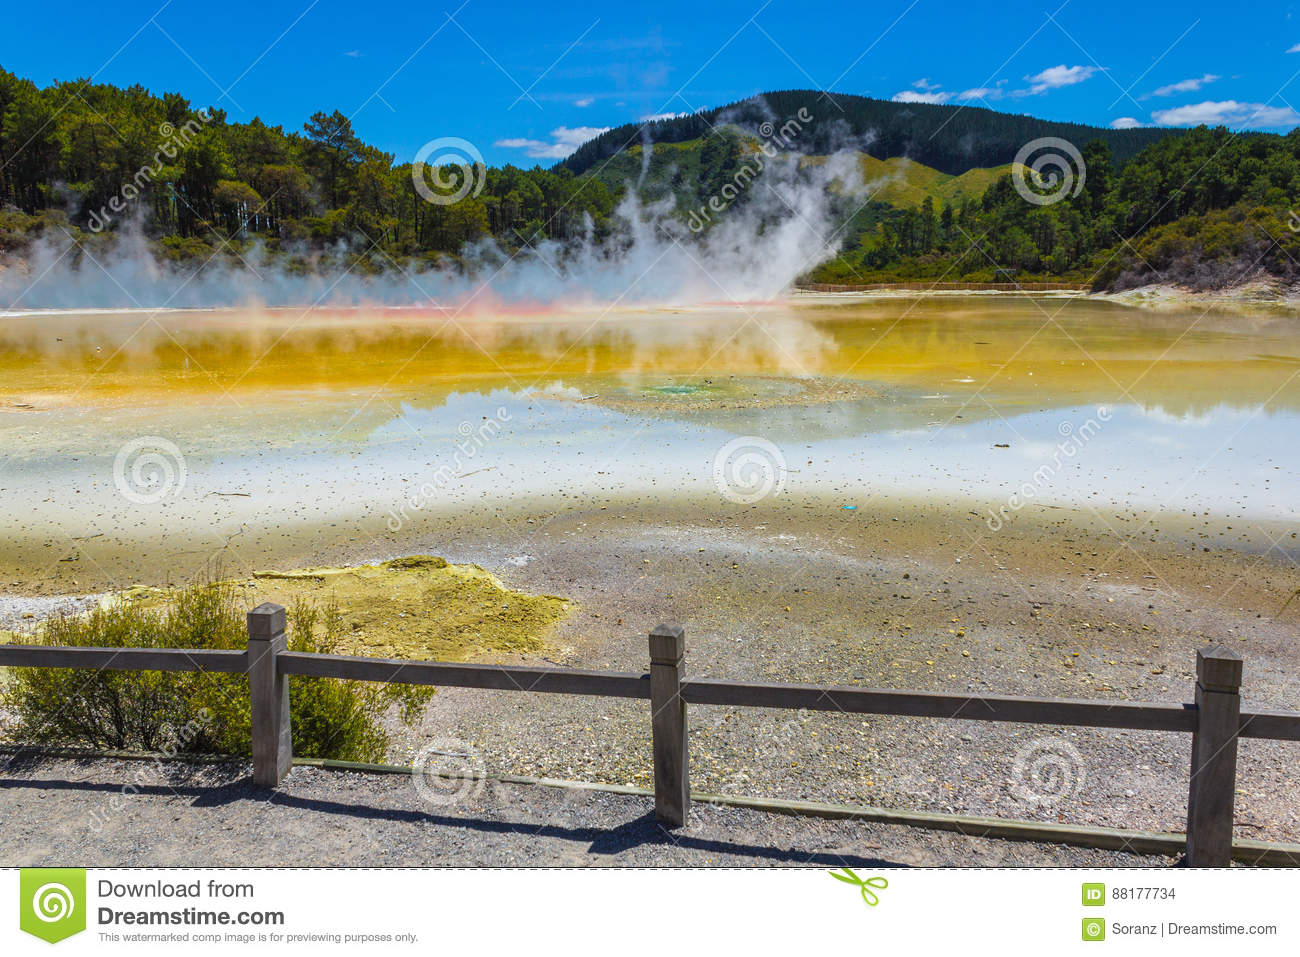 Part of The Champagne Pool at Wai-O-Tapu or Sacred Waters – Thermal Wonderland Rotorua New Zealand